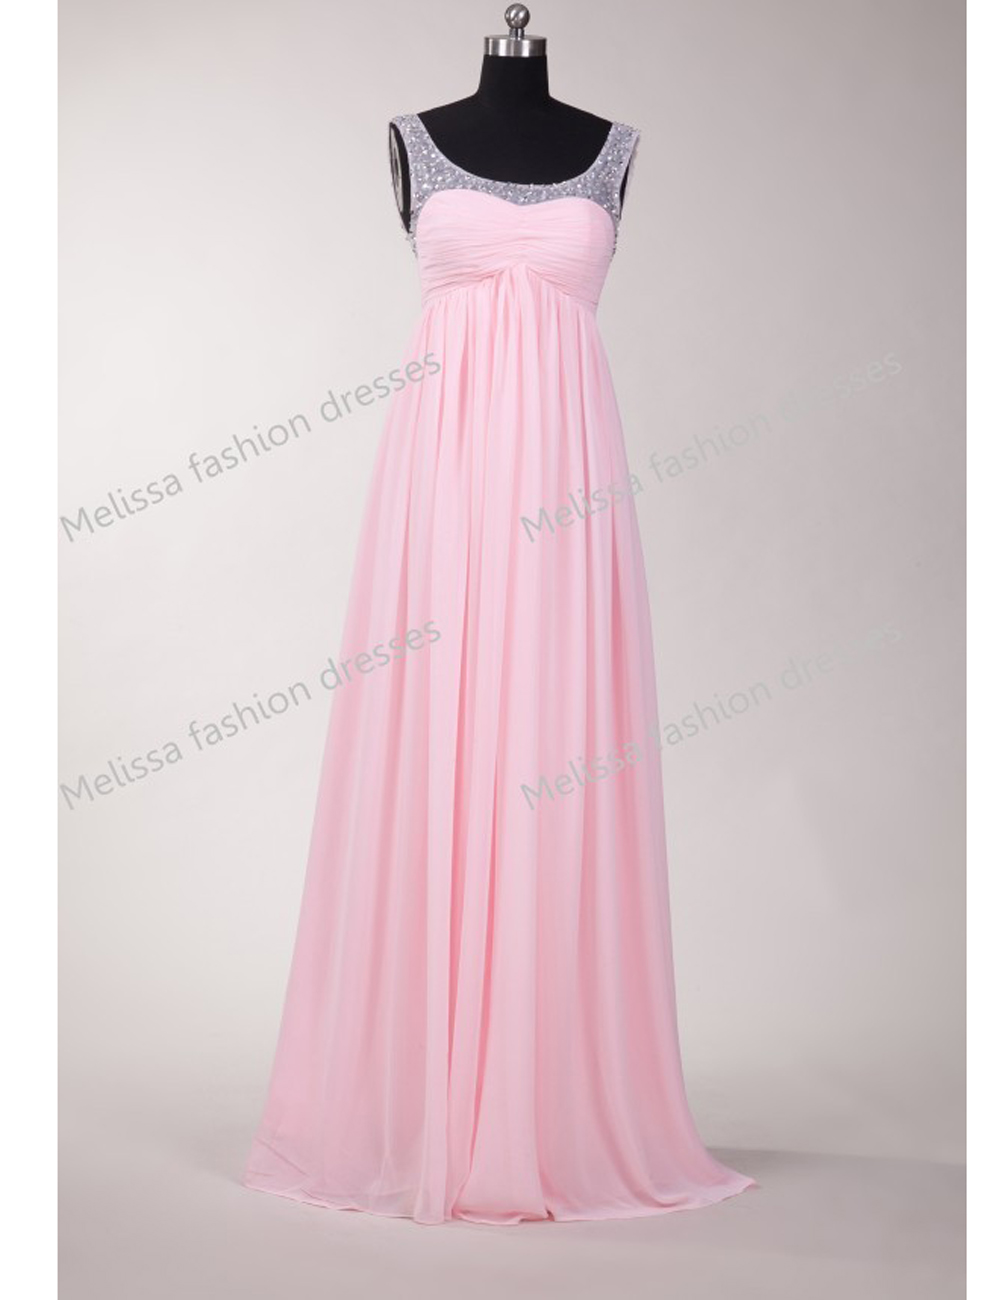 maternity dresses for baby shower pink the